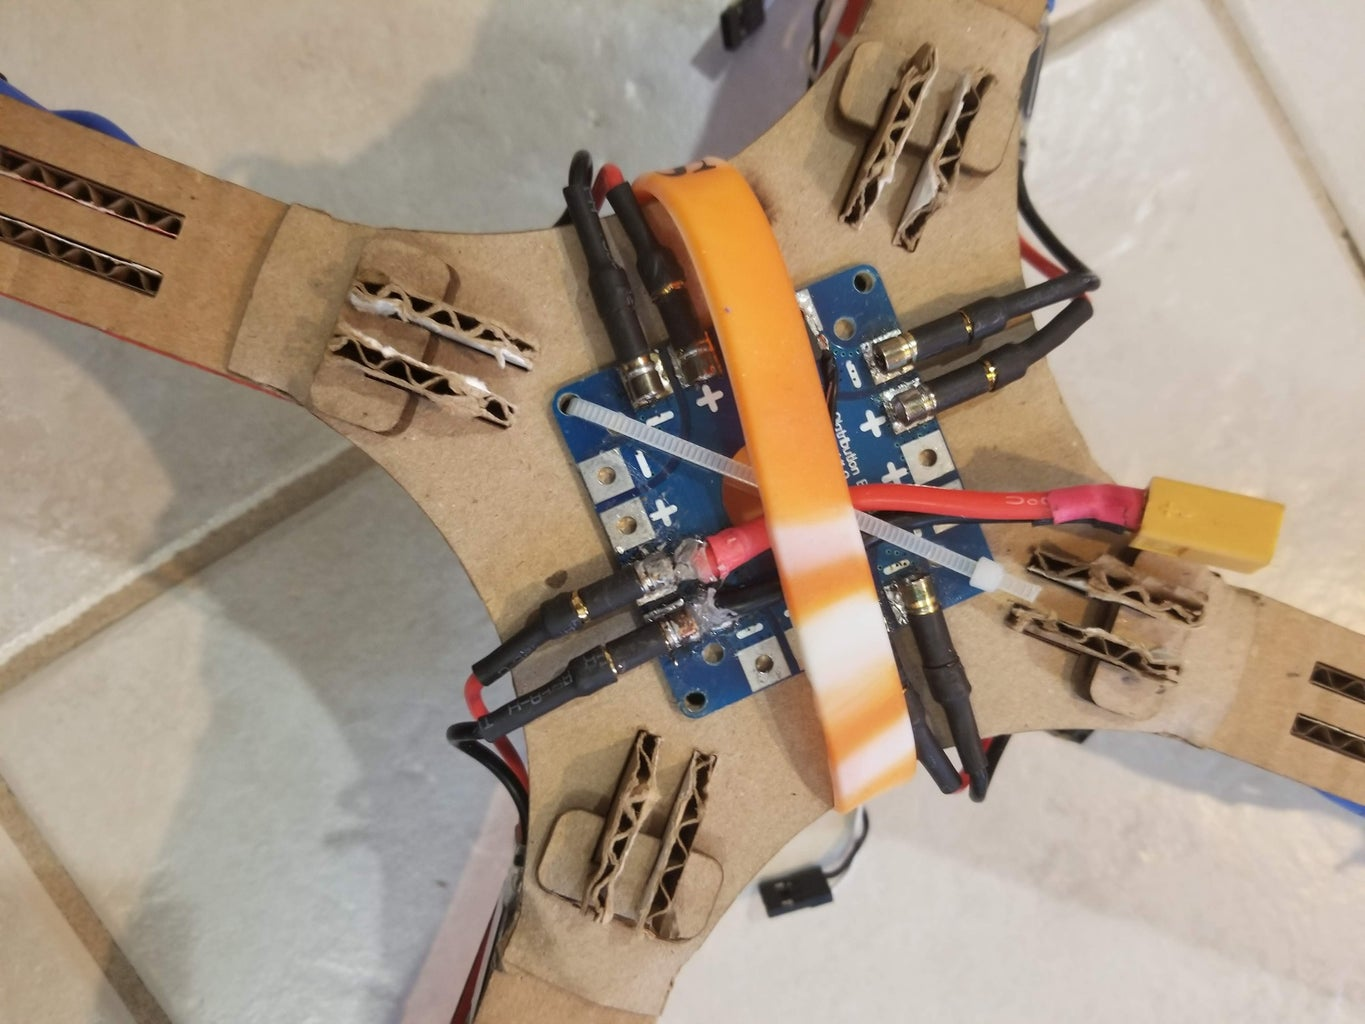 Mount and Wire the ESCs